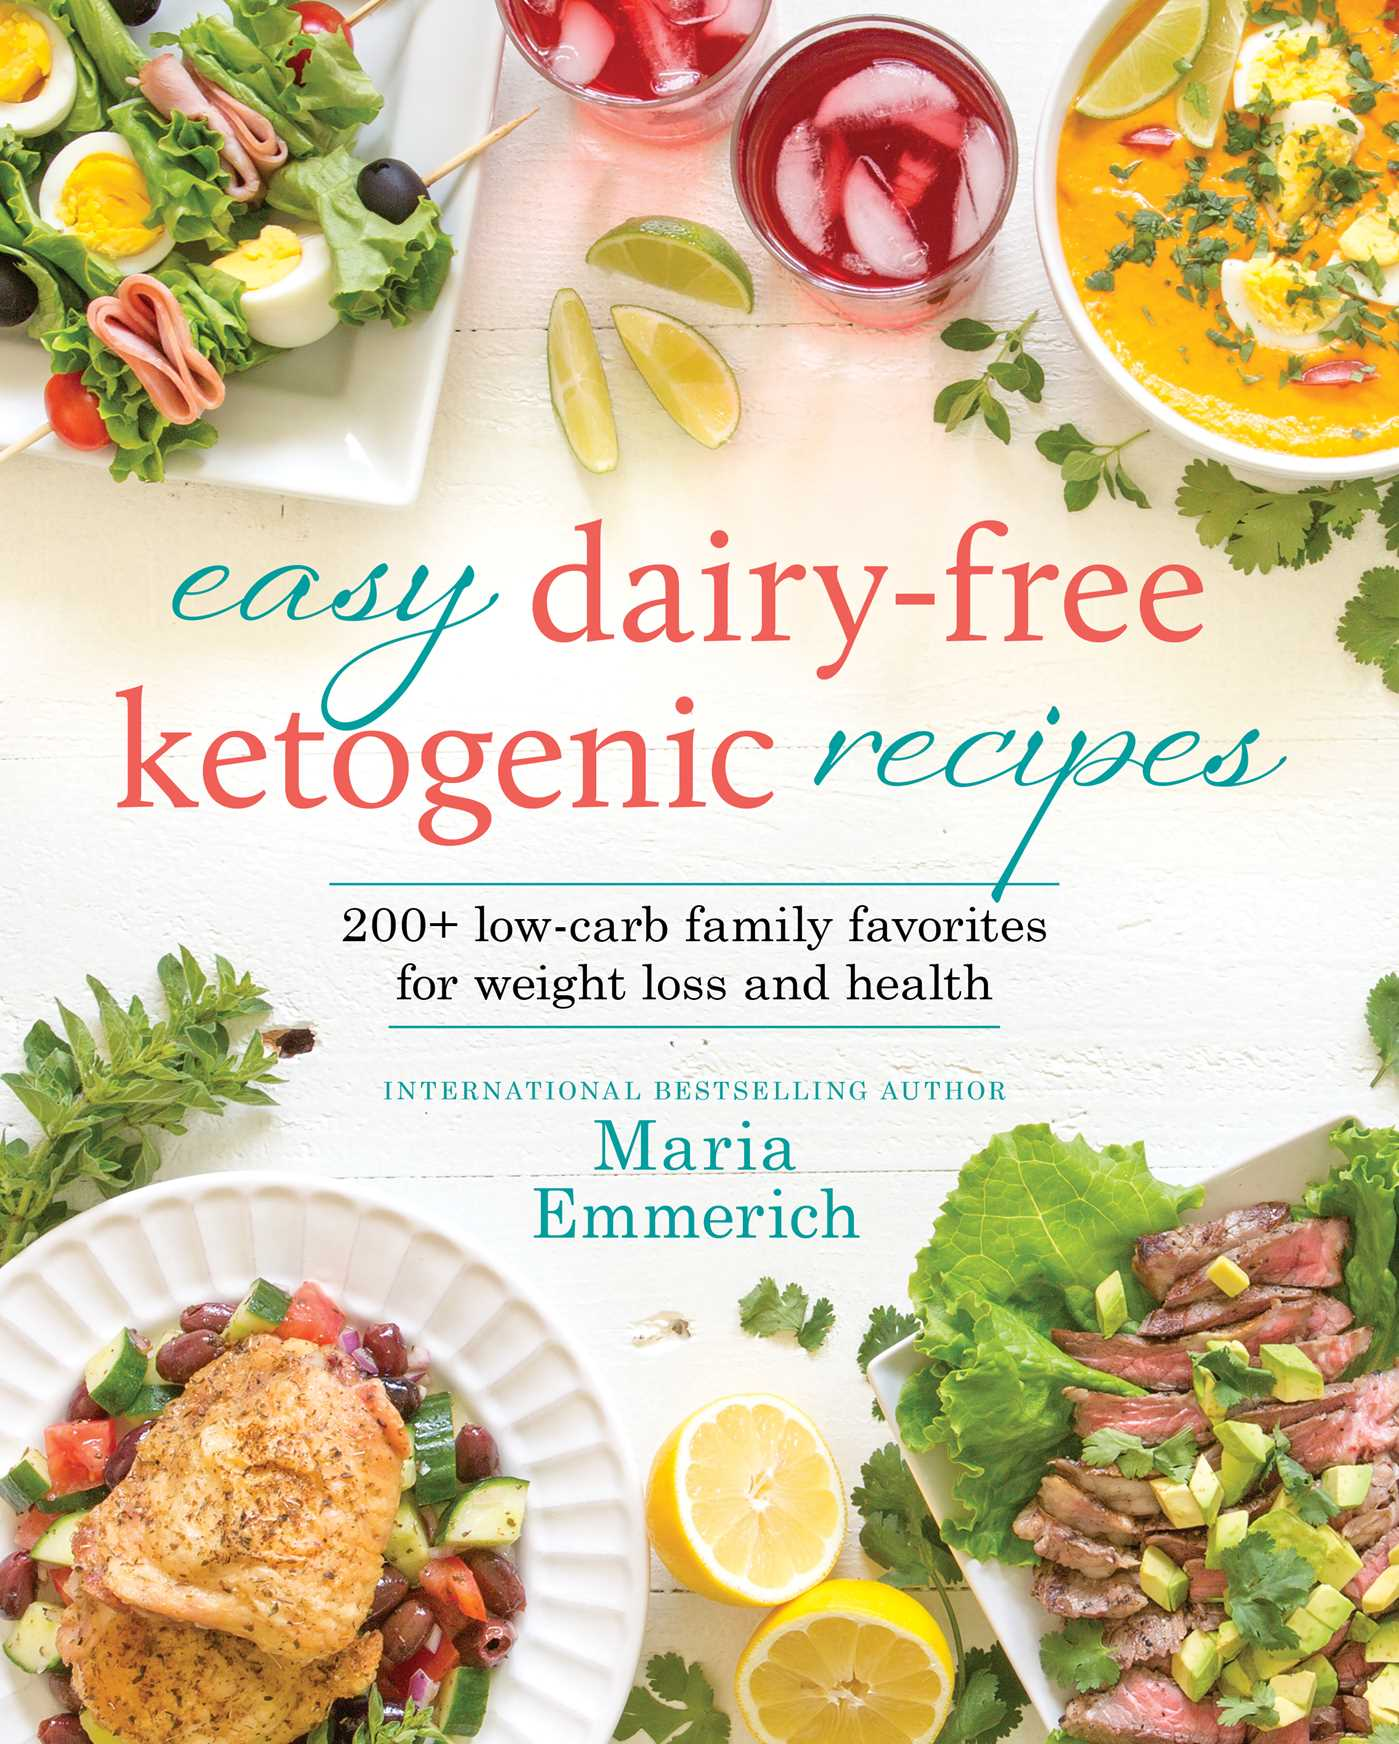 Easy dairy free ketogenic recipes 9781628602661 hr